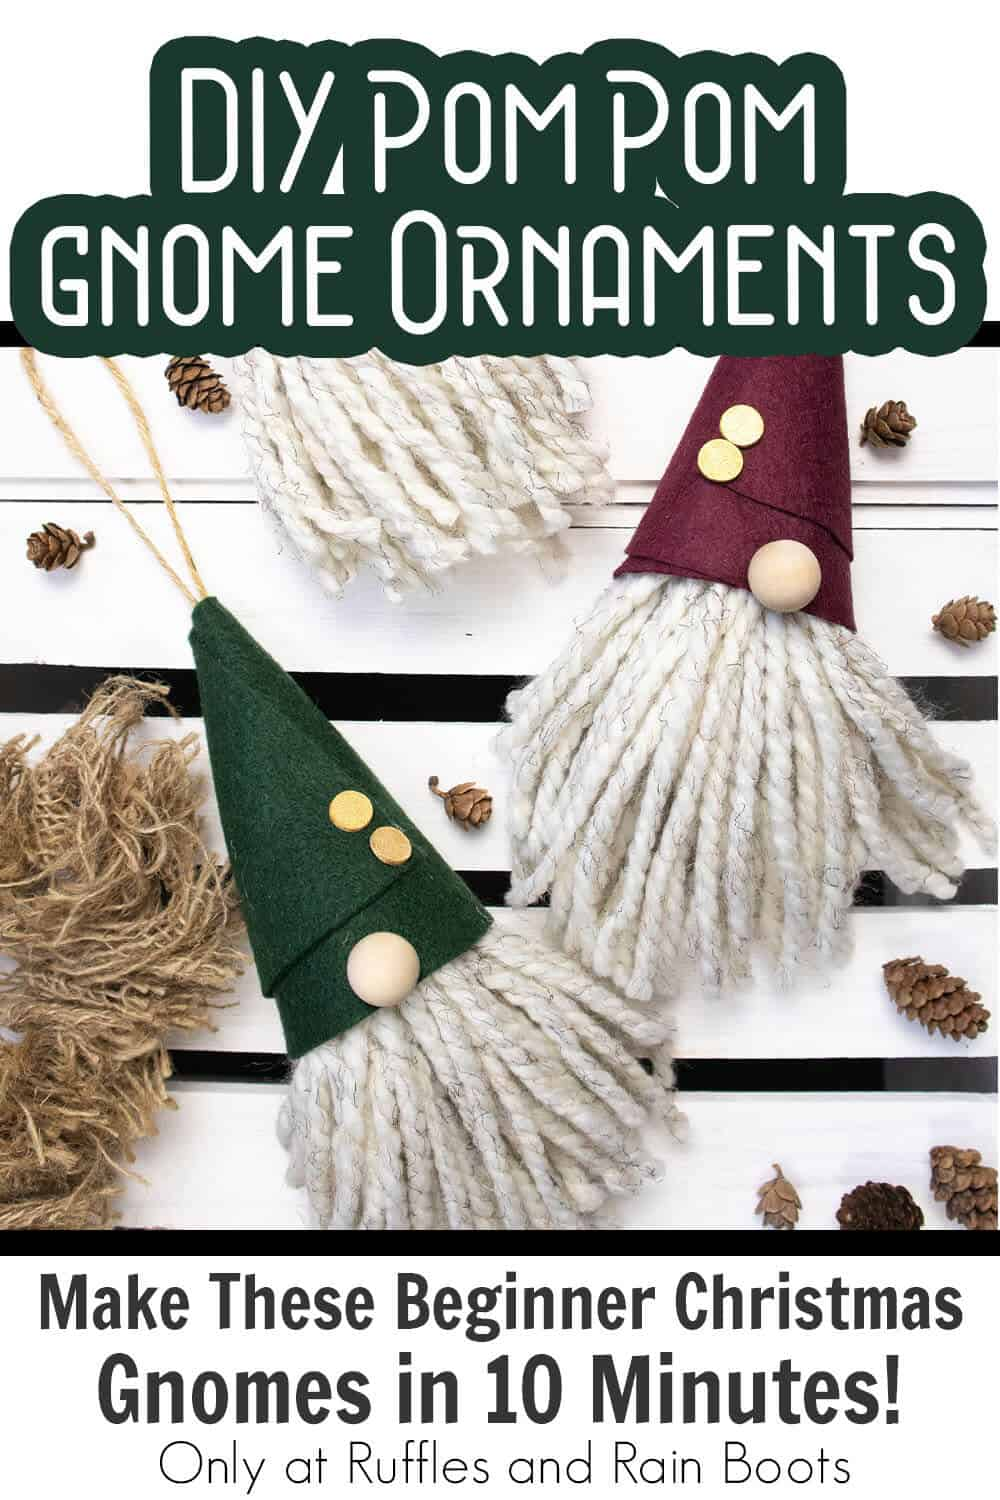 diy gnome ornament beginner gnome with text which reads diy pom pom gnome ornaments make these beginner christmas gnomes in 10 minutes!